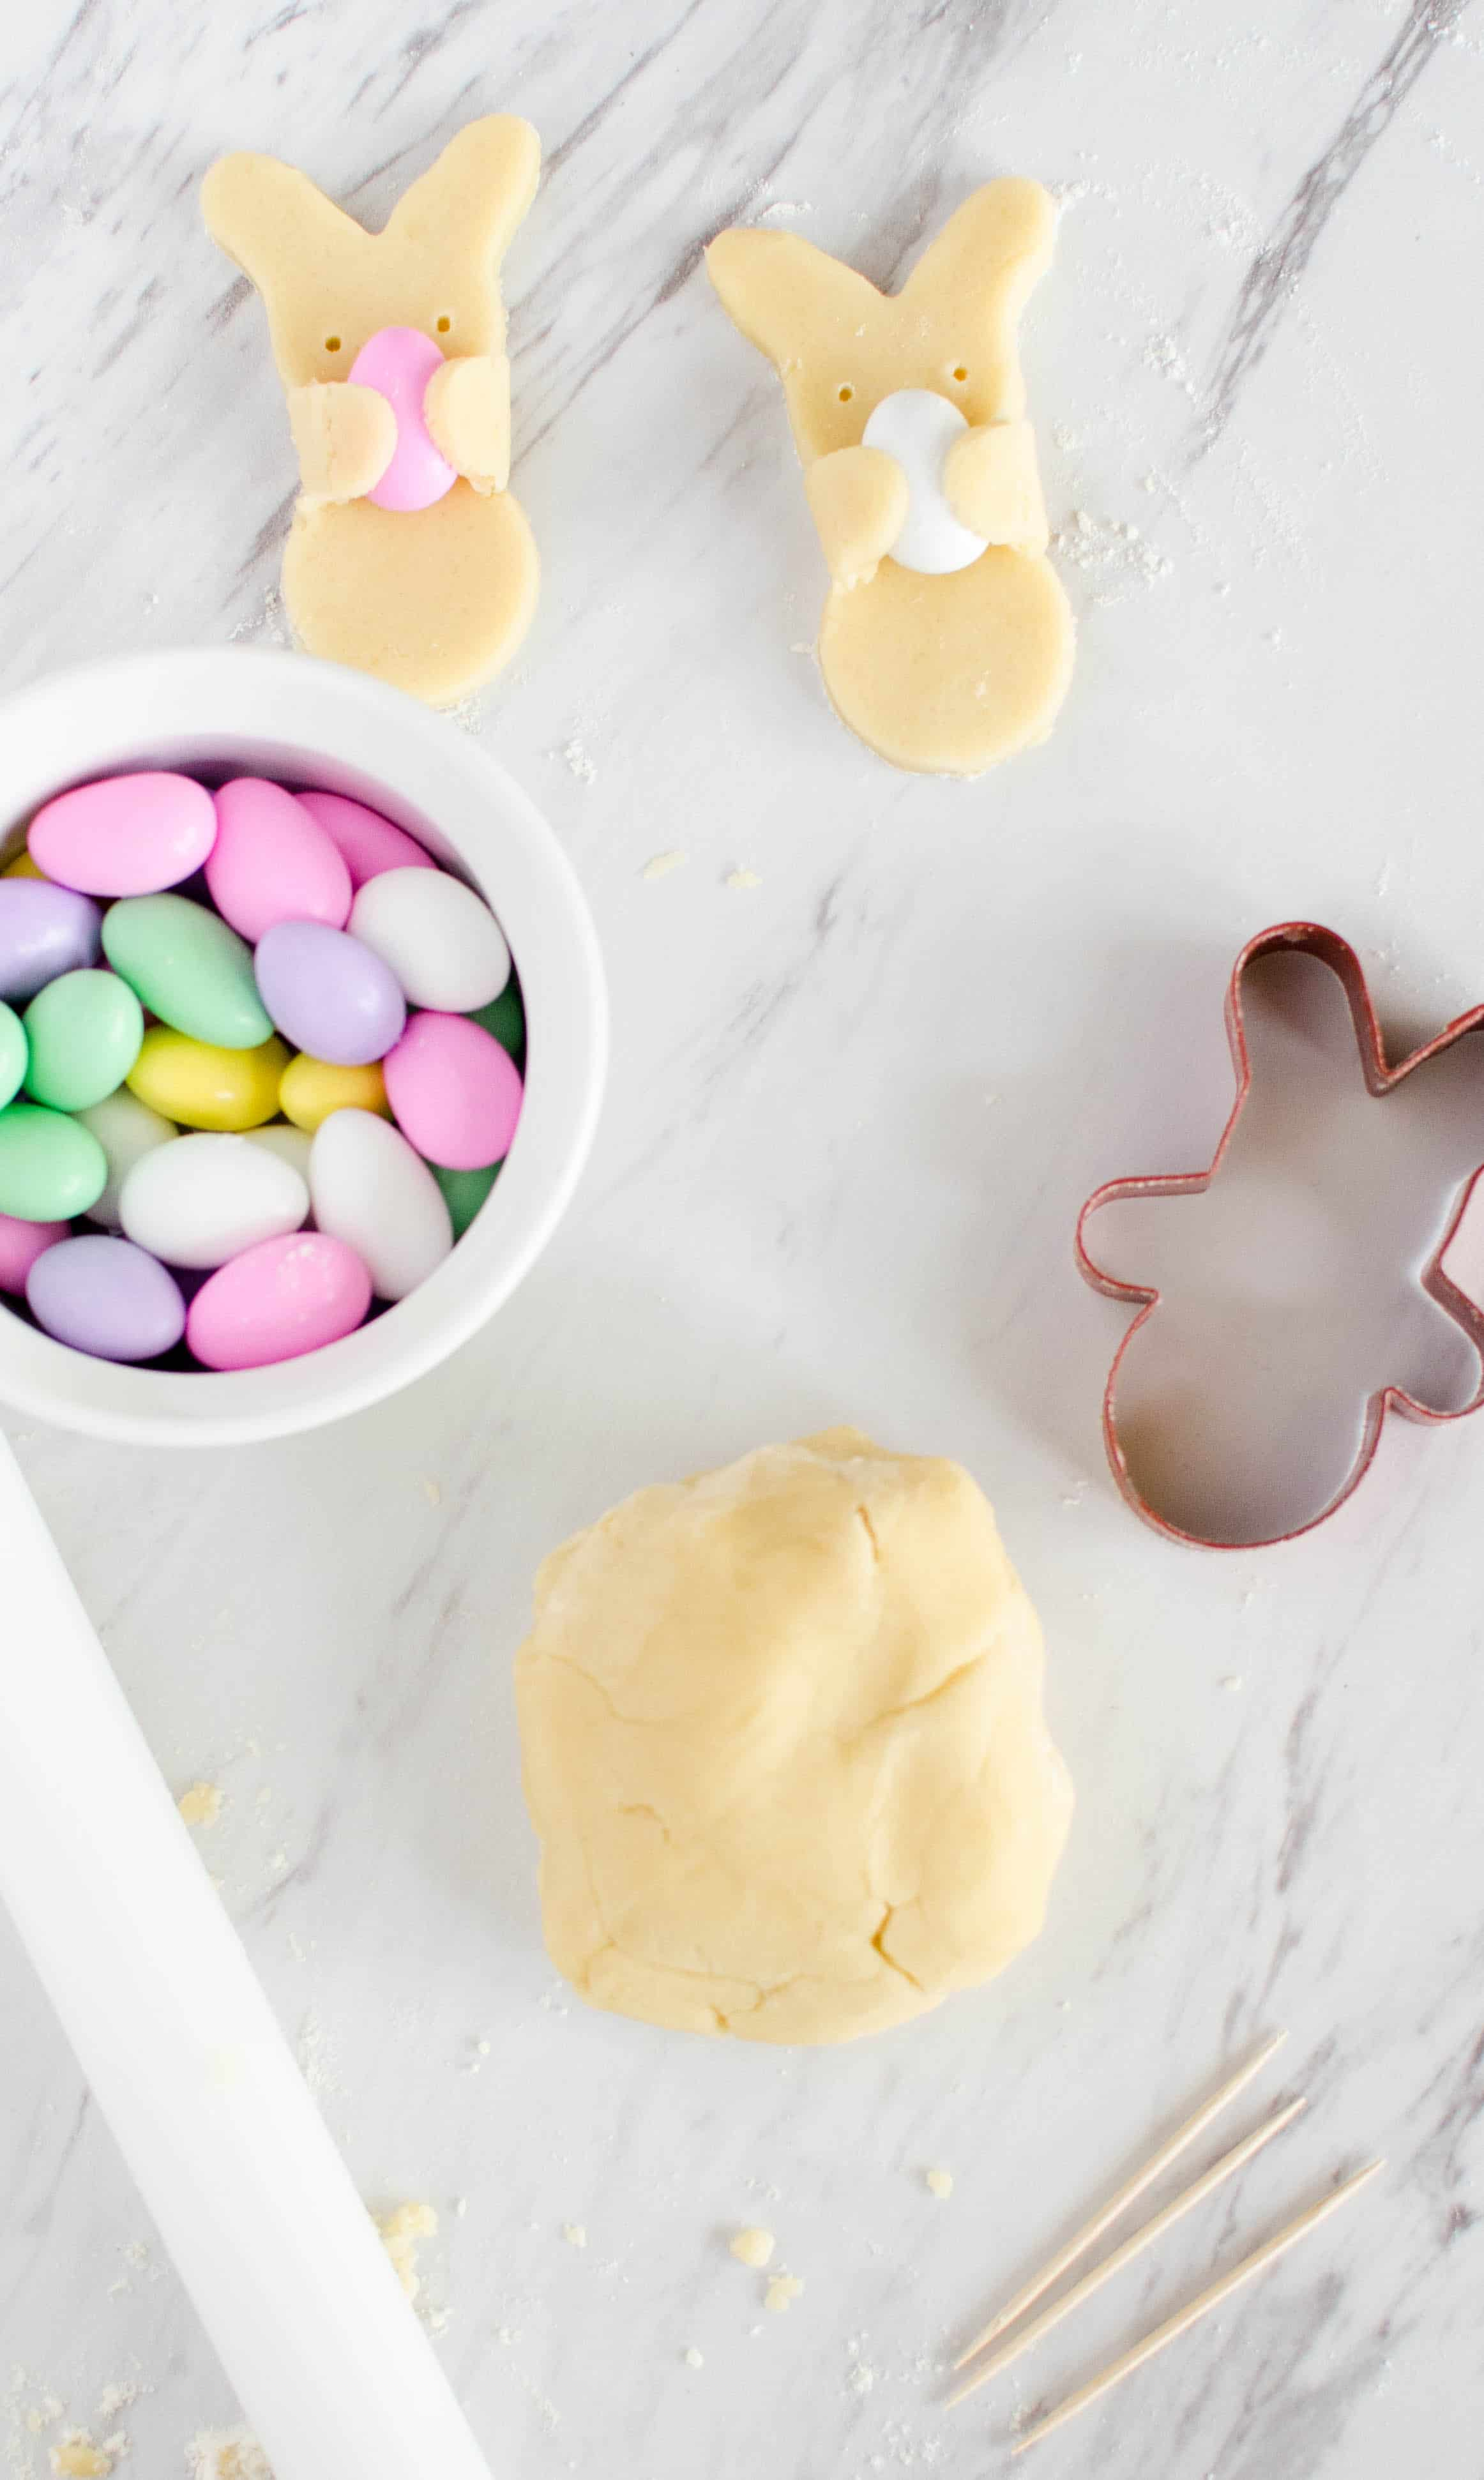 Learn how to make adorable Easter bunny cookies. These are really cute and are pretty simple to put together.